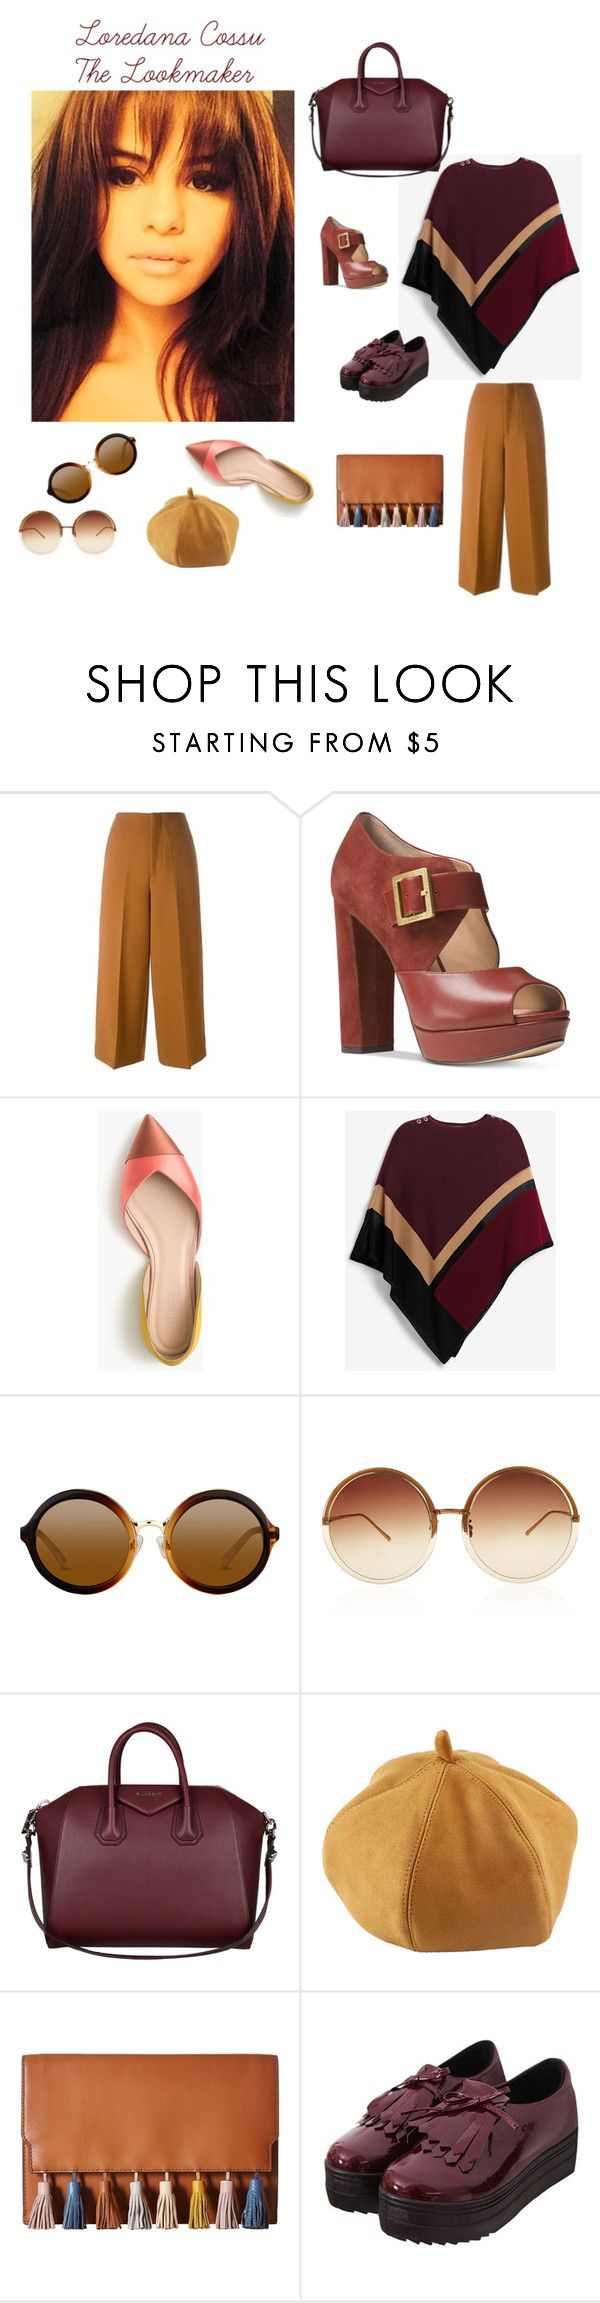 Donna AUTUNNO:Sei una donna dai colori caldi e morbidi? by loredanacossu on Polyvore featuring moda, White House Black Market, Marni, J.Crew, Michael Kors, Givenchy, Rebecca Minkoff and Linda Farrow